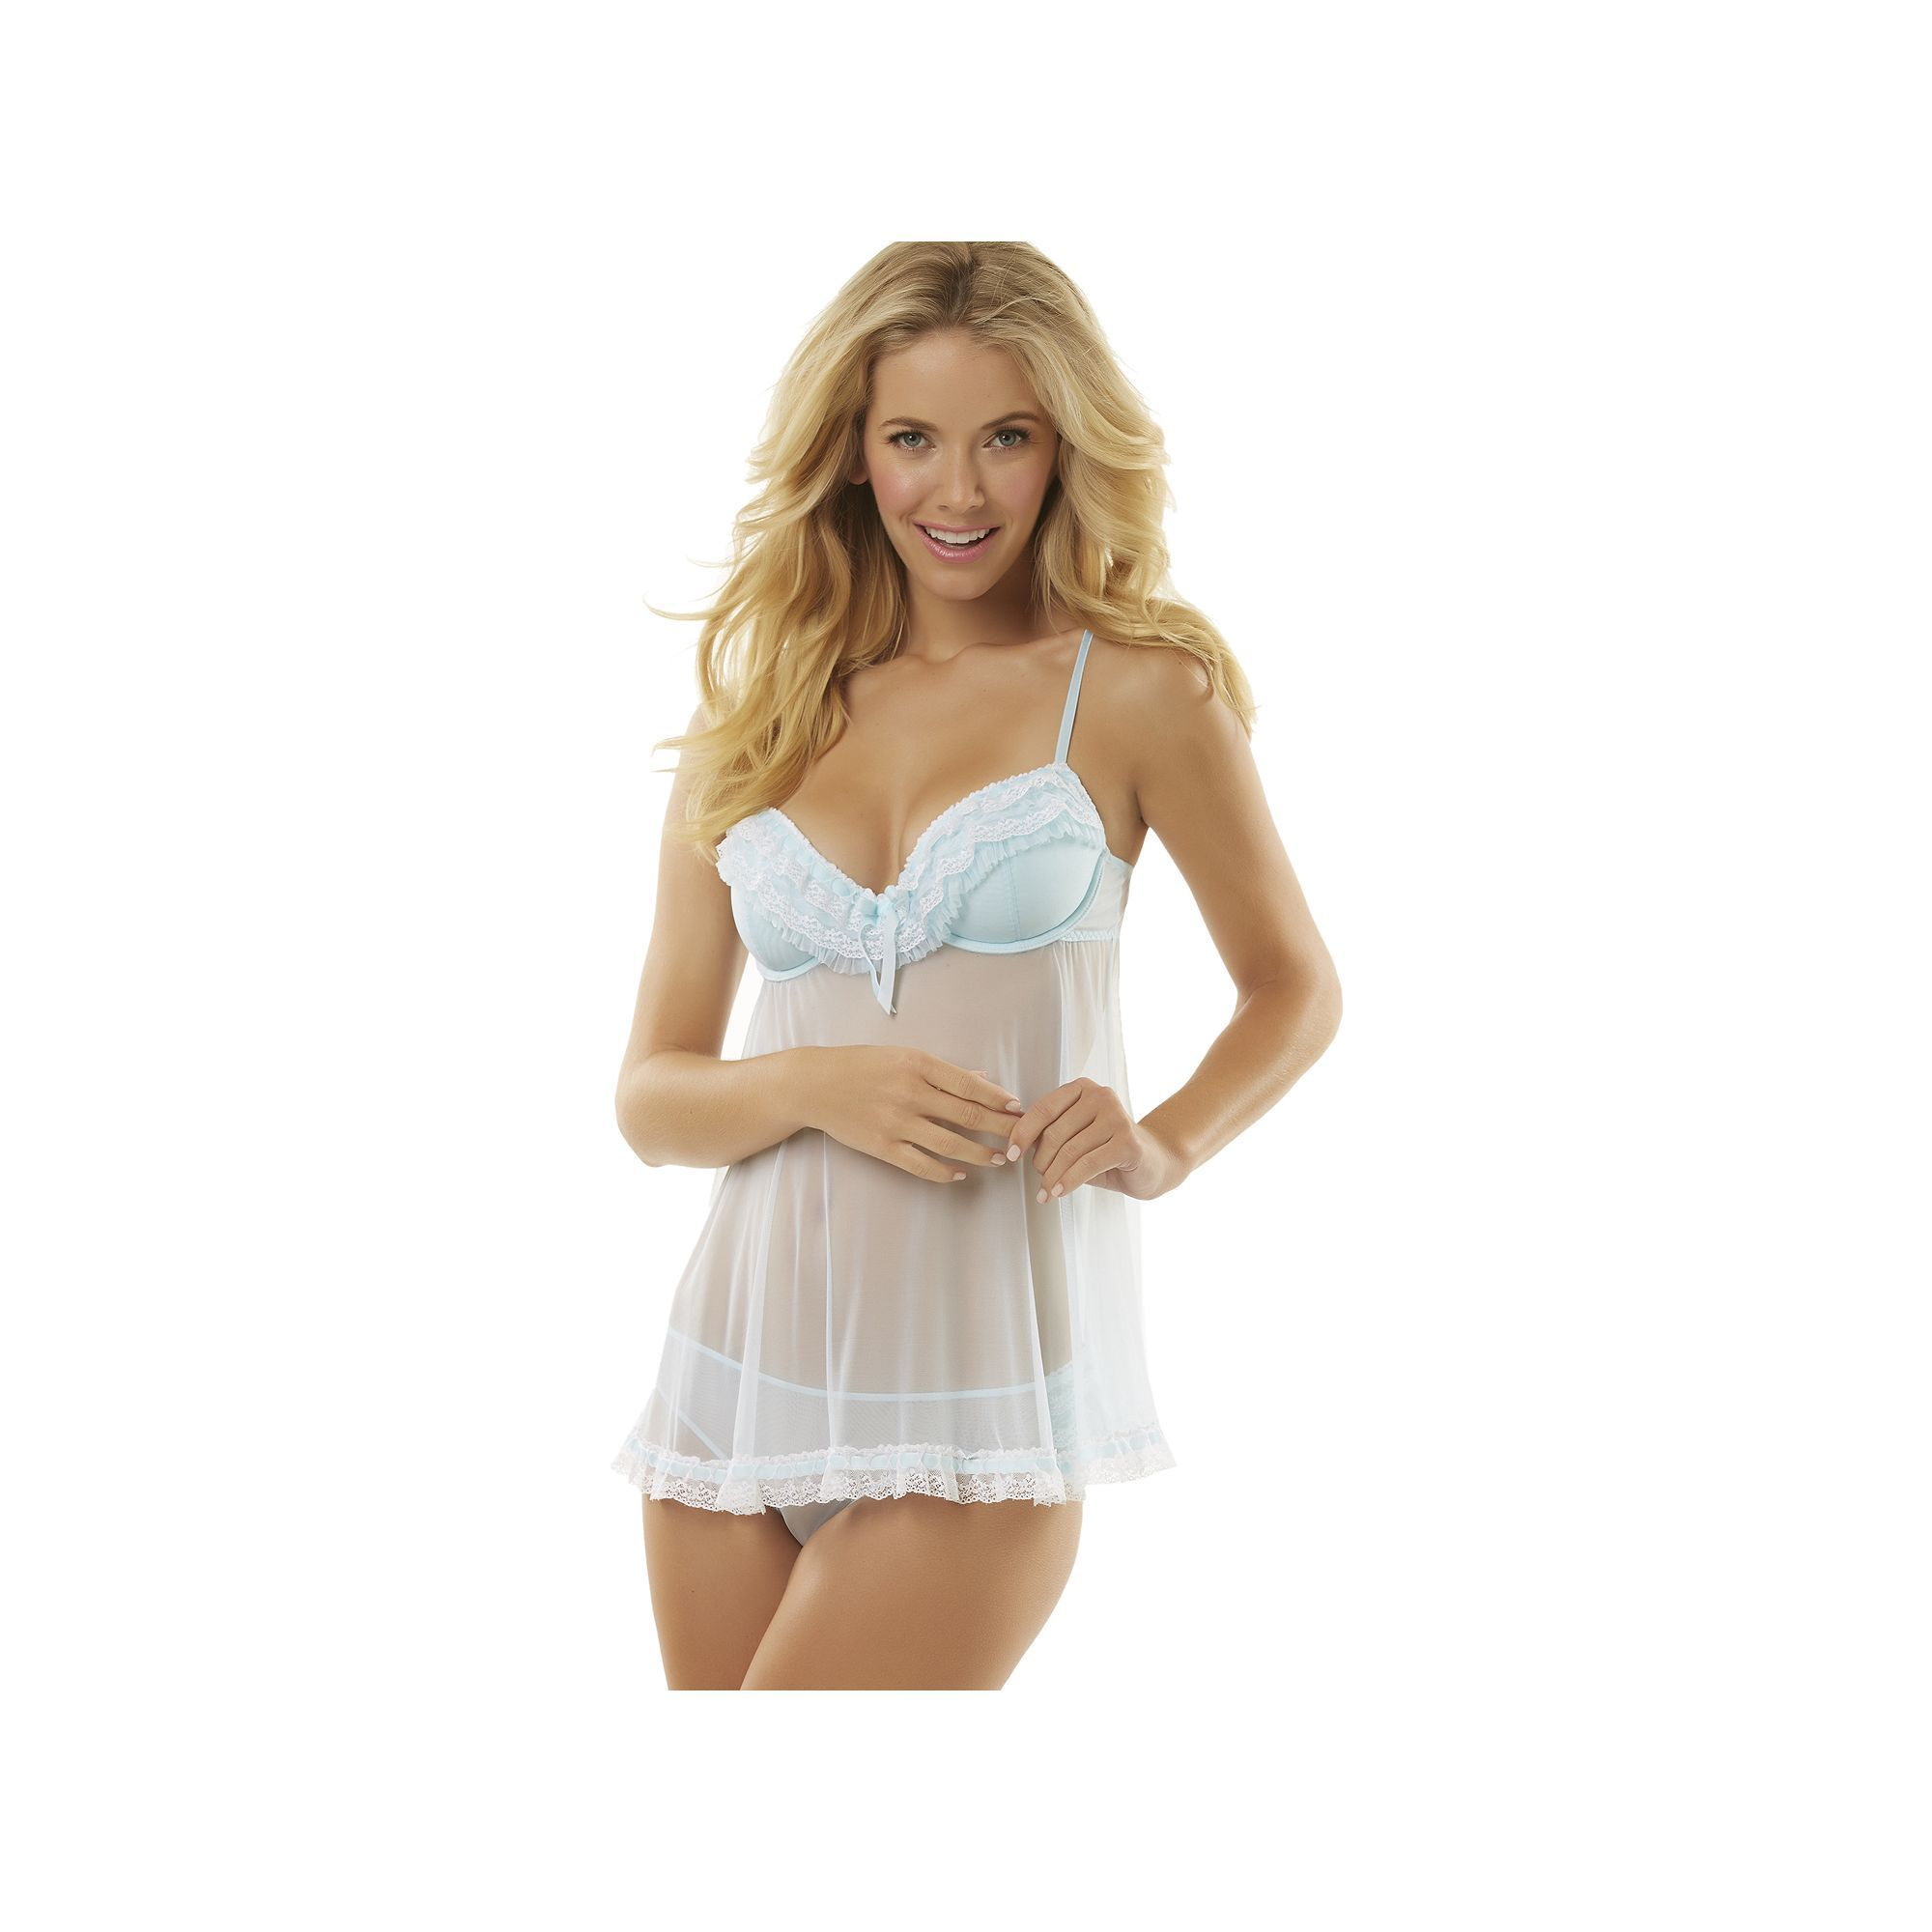 Jezebel Ruffles Galore Babydoll Chemise and Hipster Panty Lingerie ...